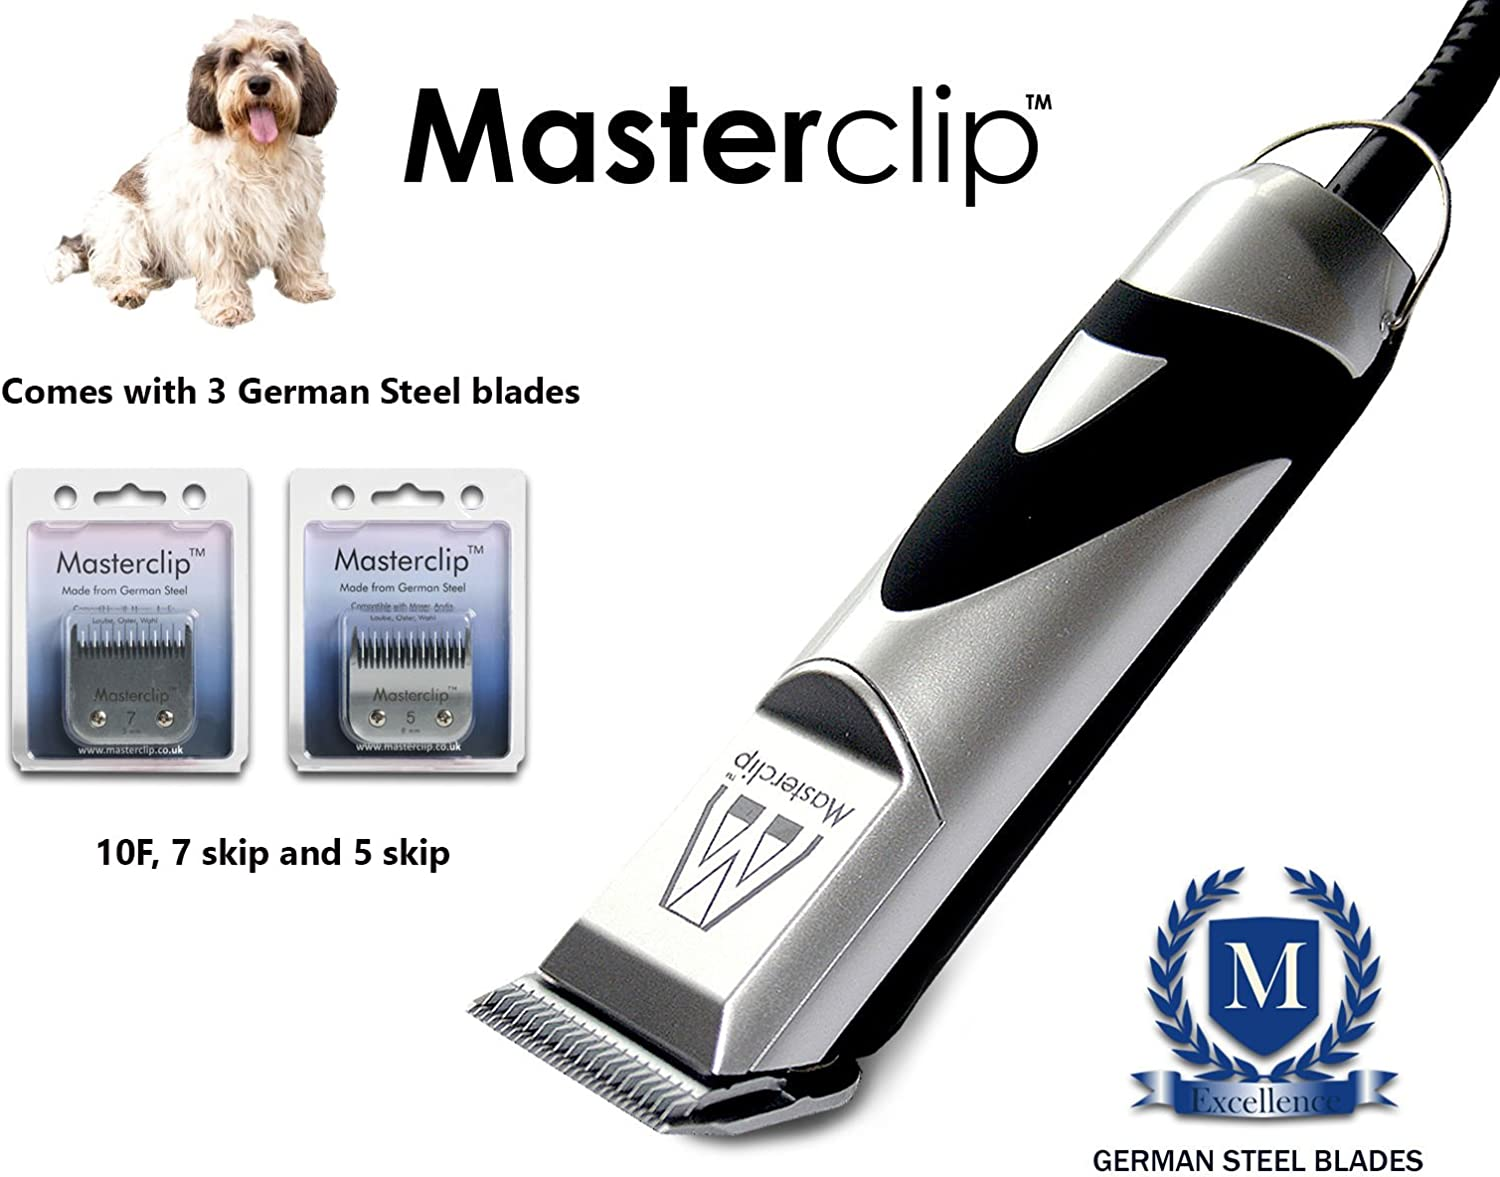 Masterclip Petite Griffon Vendeen Professional Dog Clippers Set Pet Grooming Clipper Trimmer Supplies